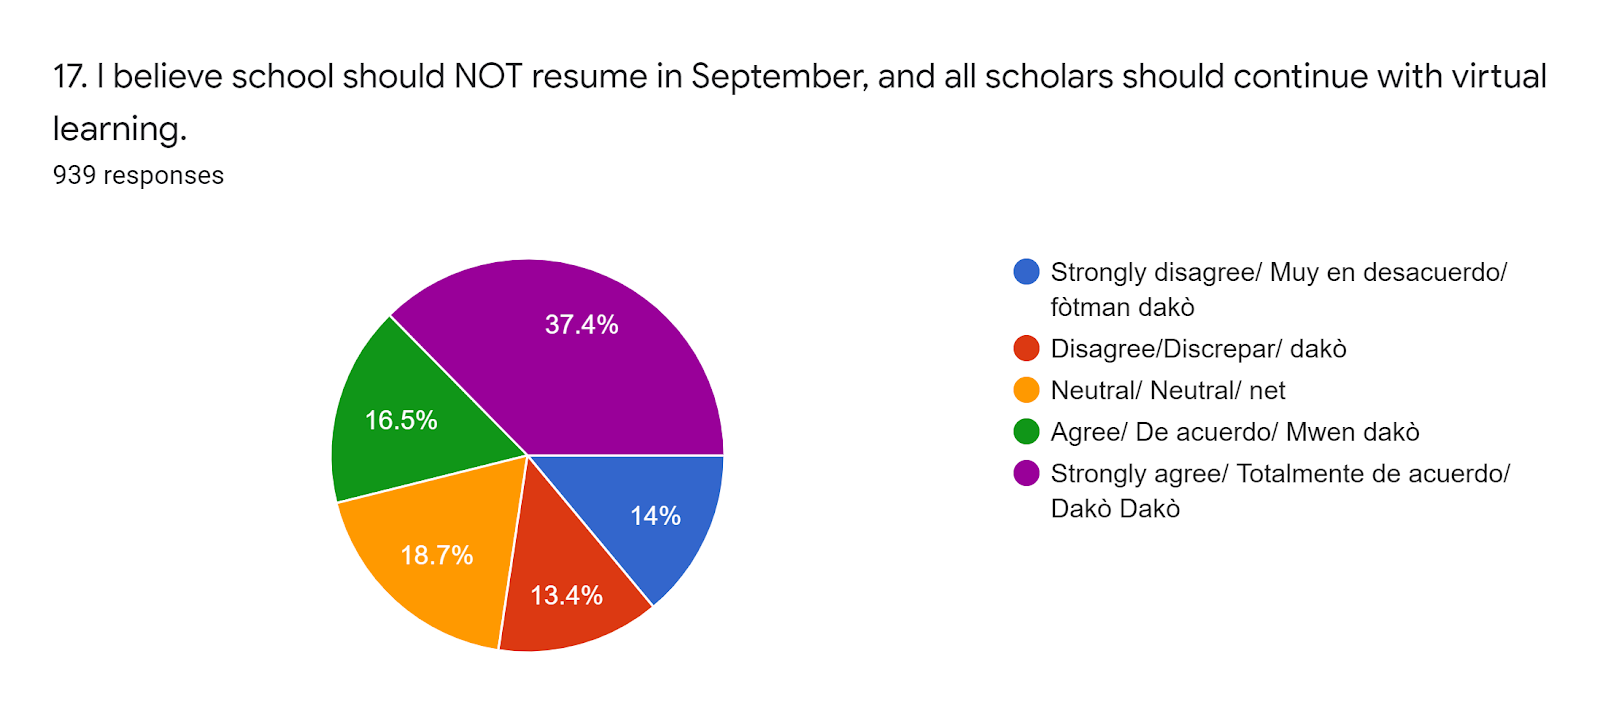 Forms response chart. Question title: 17. I believe school should NOT resume in September, and all scholars should continue with virtual learning. . Number of responses: 939 responses.